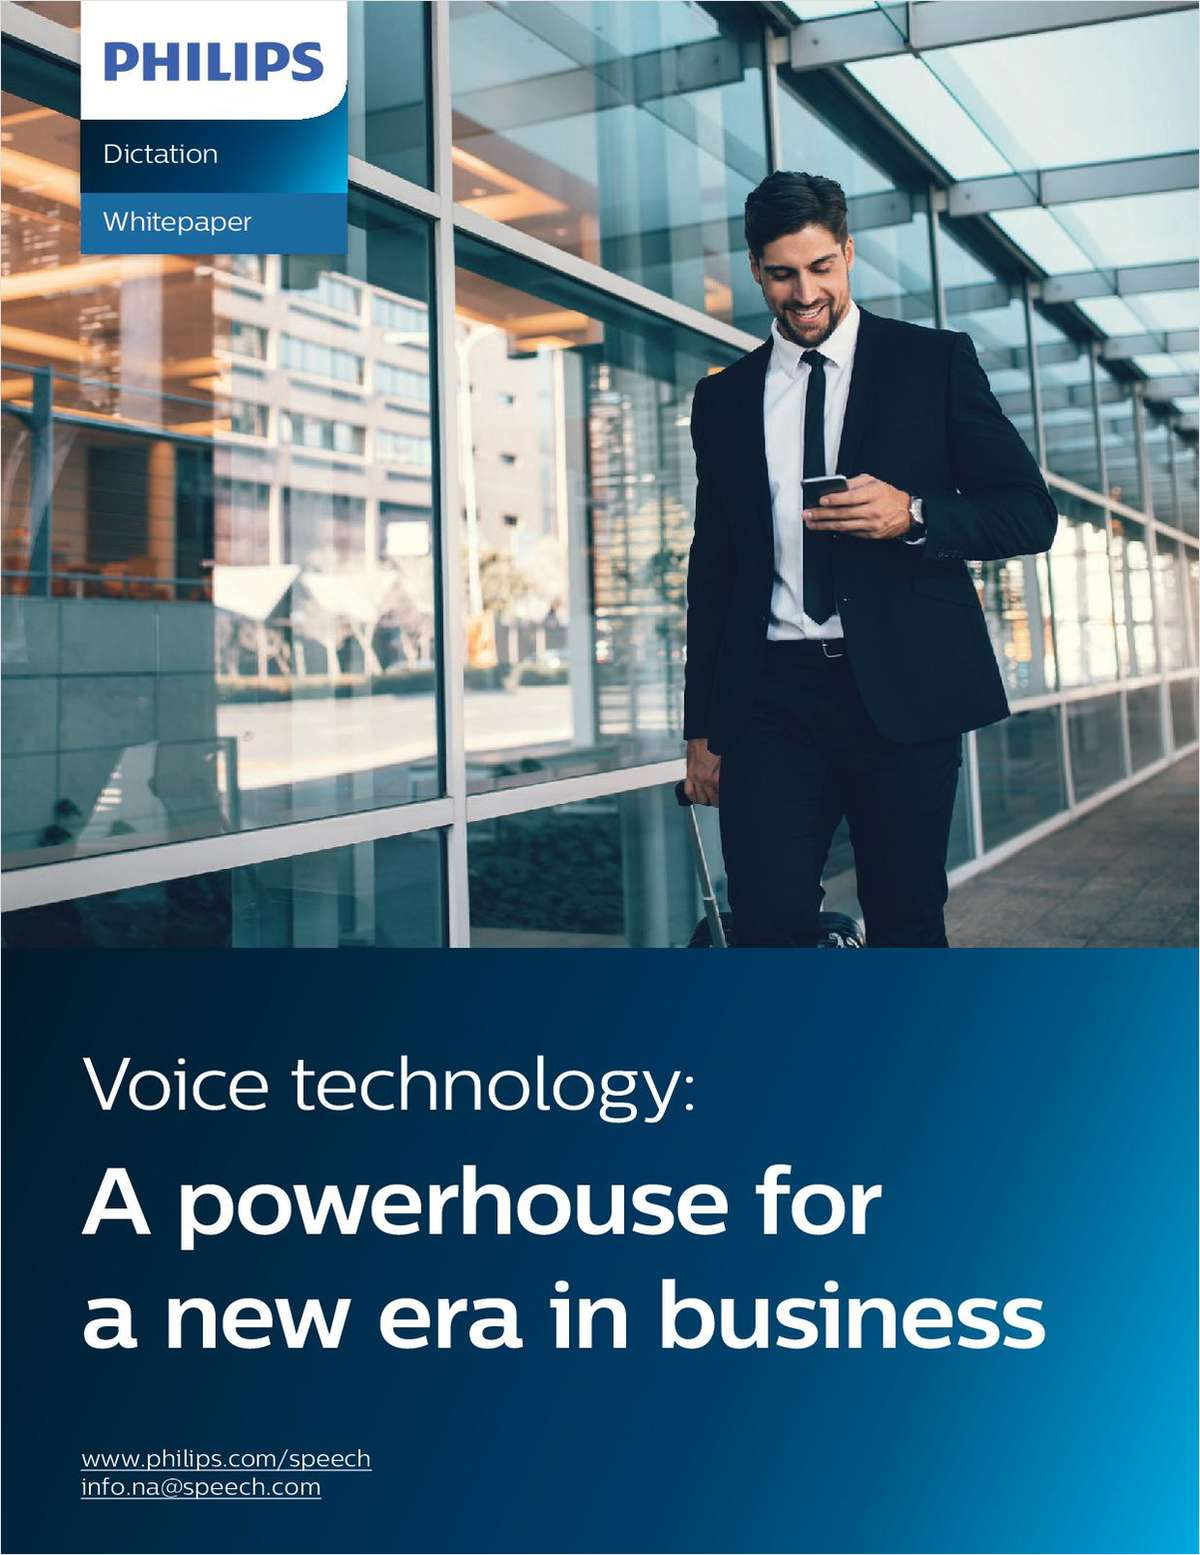 Voice technology is transforming legal business processes and client service. This white paper explores not only the benefits of new innovations in voice technologies, but also the ways it is evolving to continuously meet the needs of legal professionals.